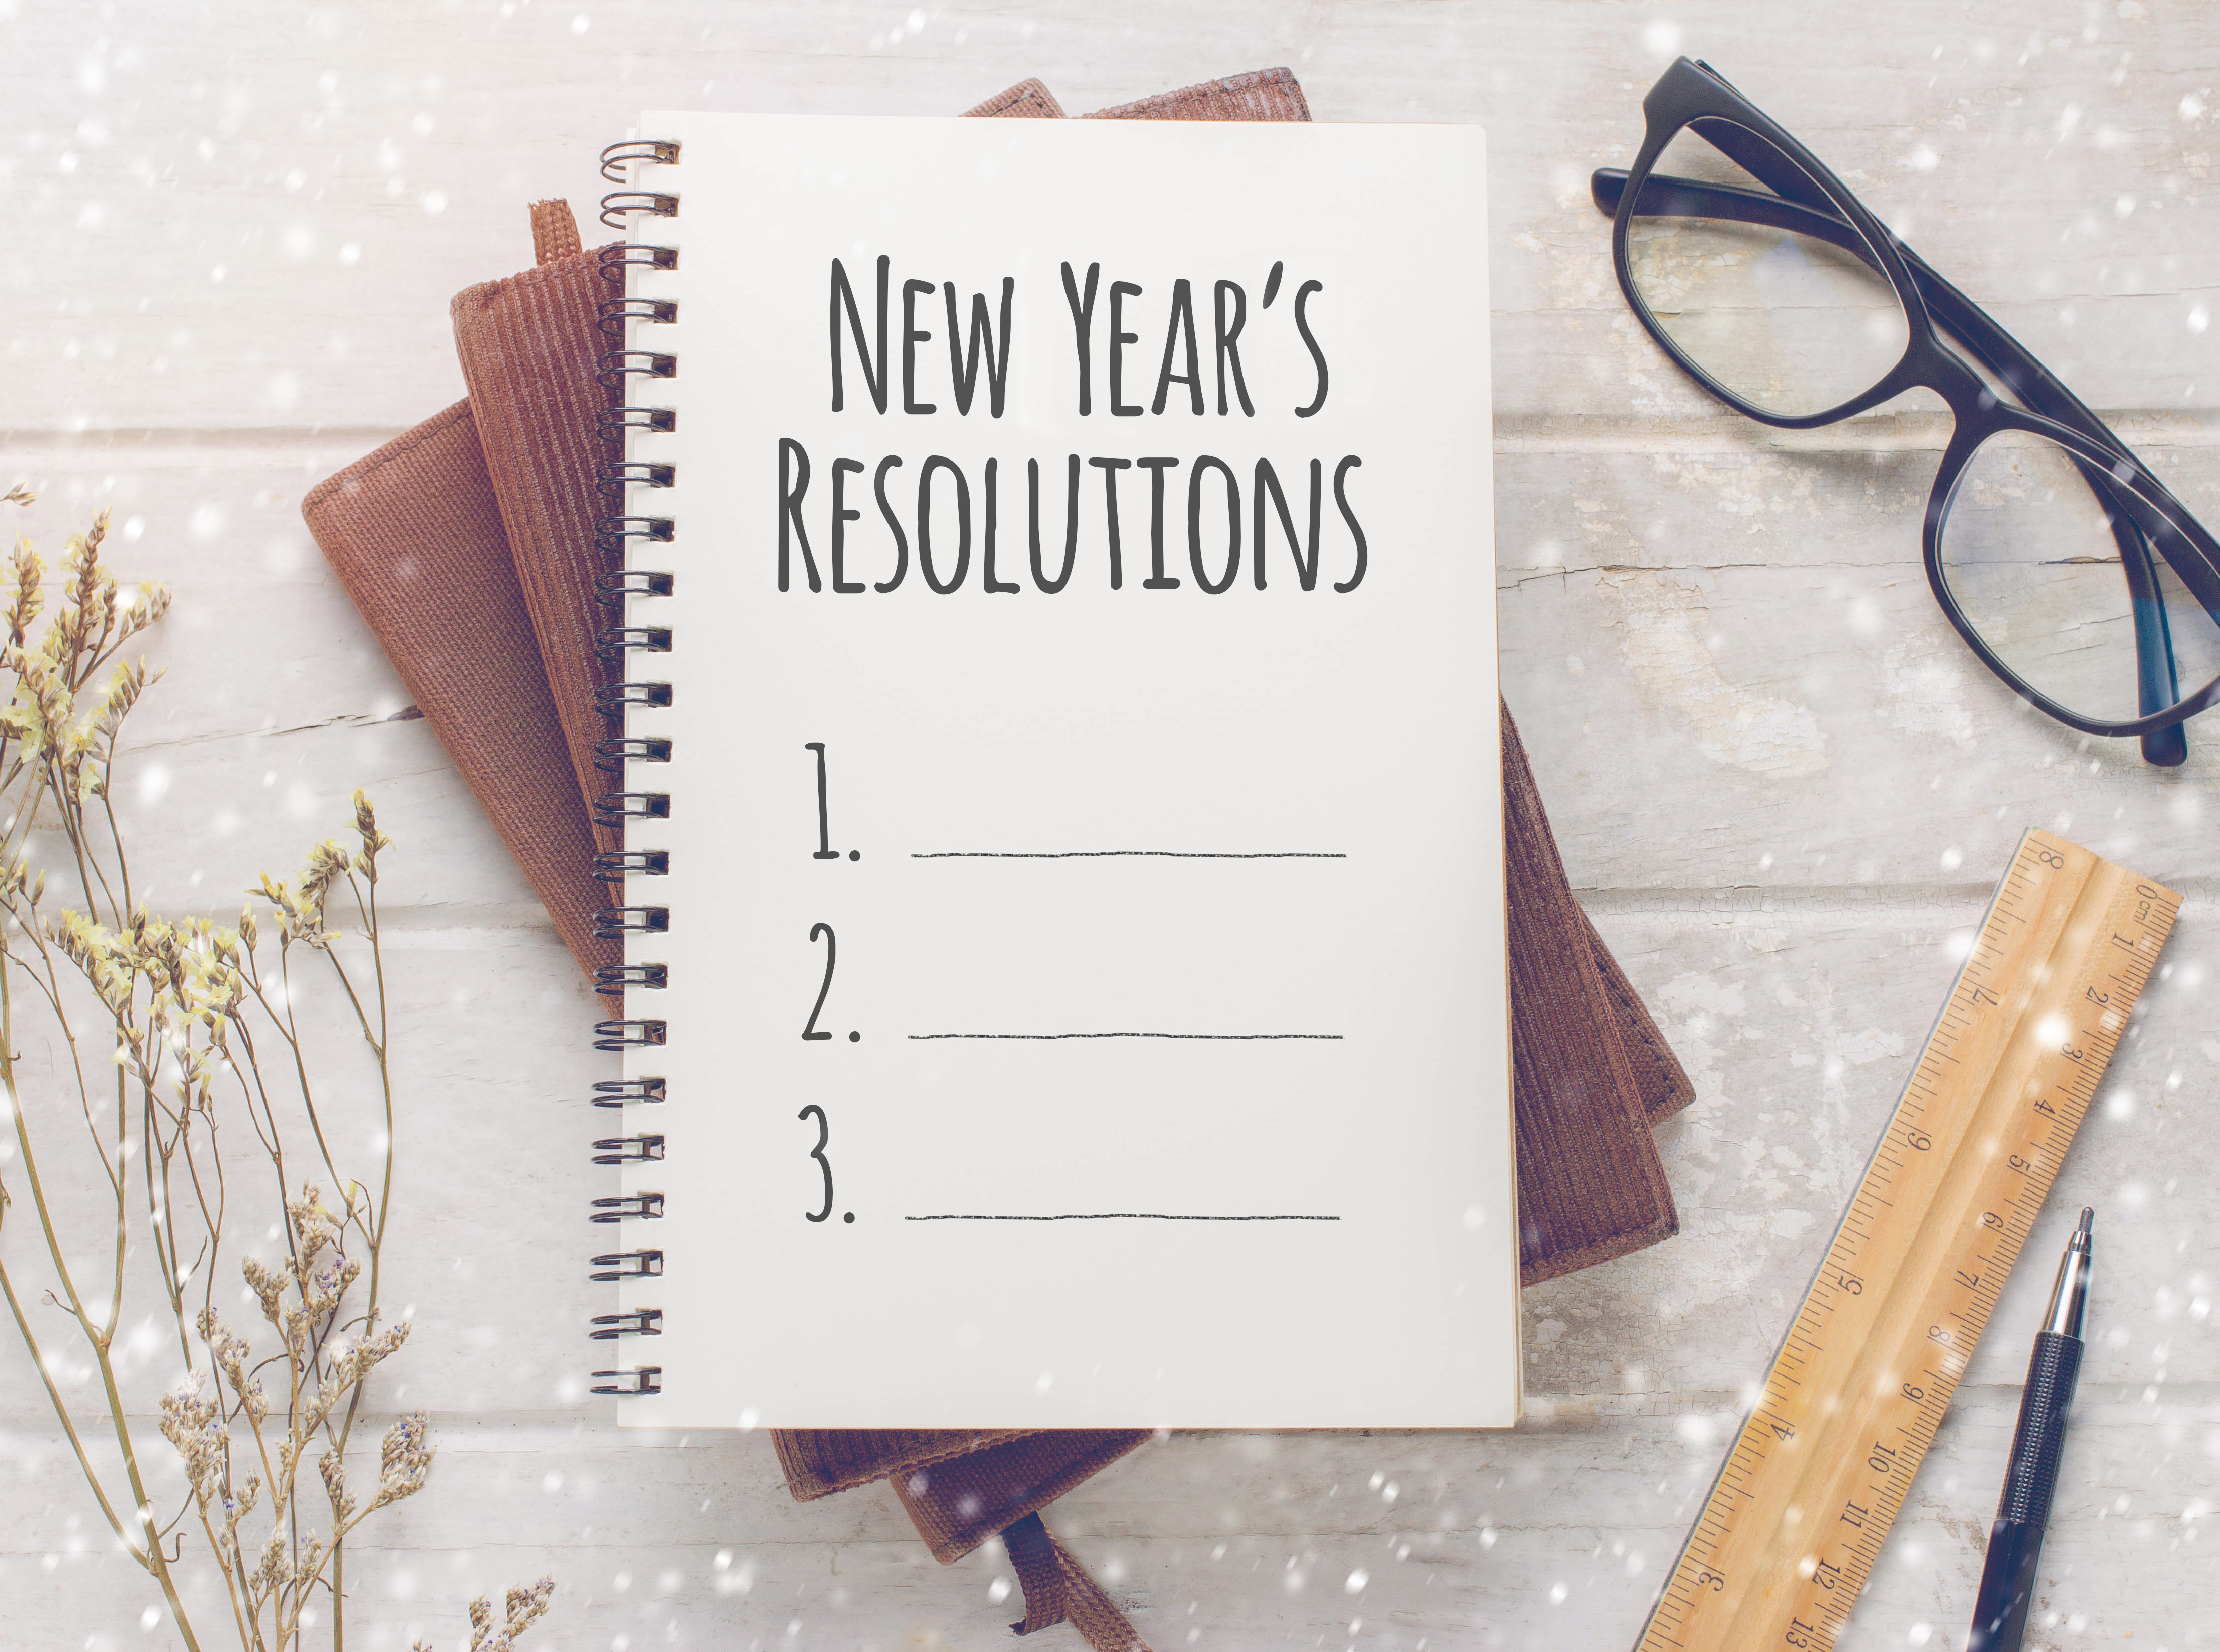 About New Year's Resolutions